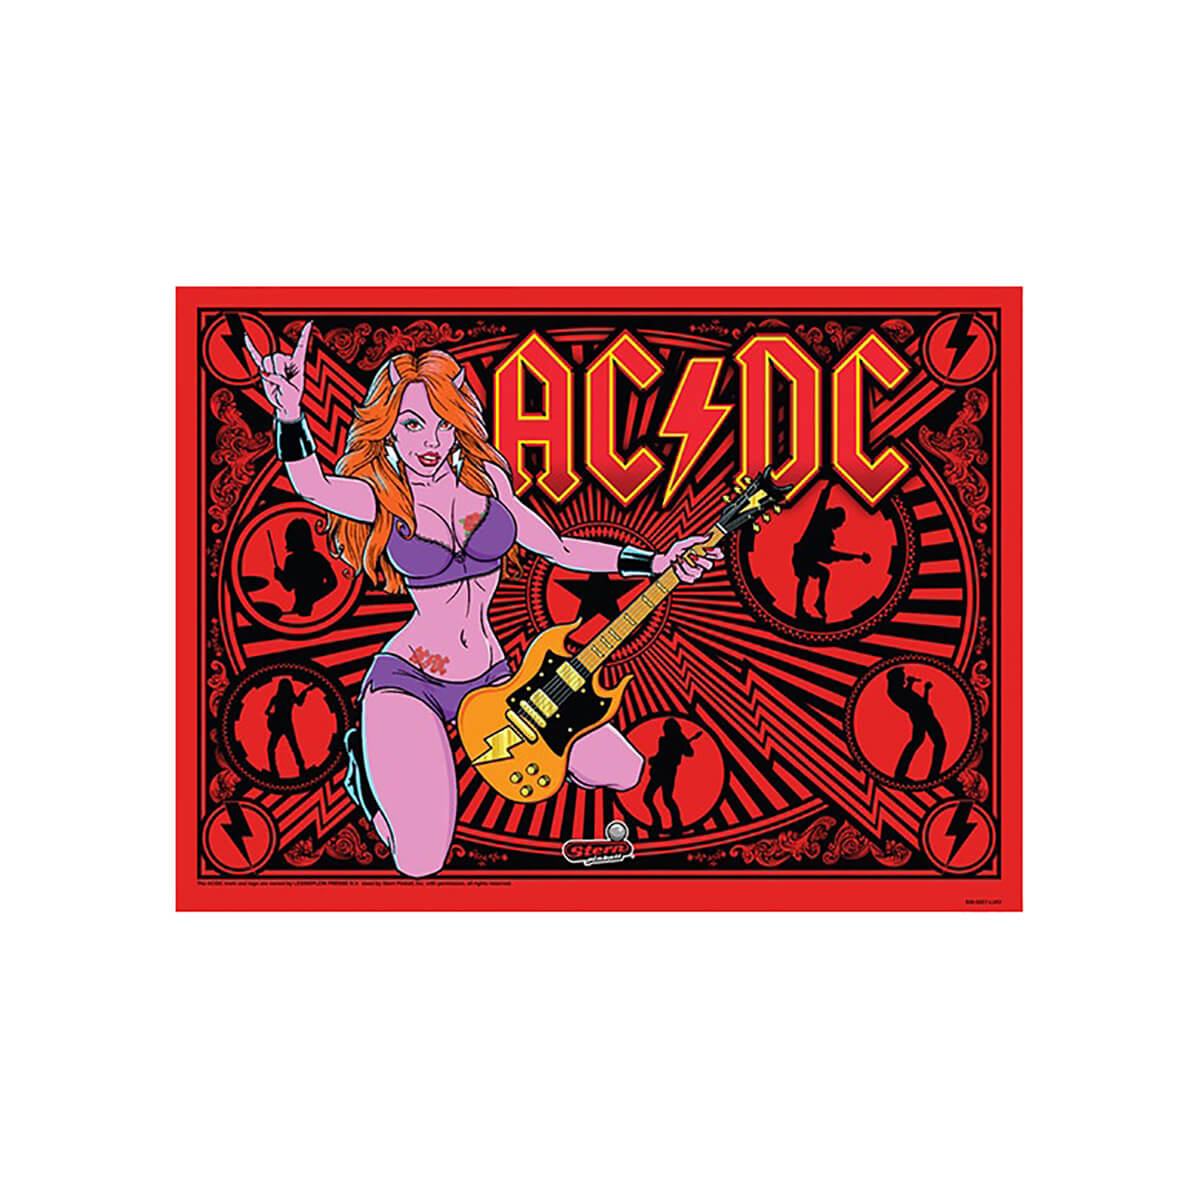 Buy AC/DC Luci Vault Premium Pinball Machine by Stern Online at $7199